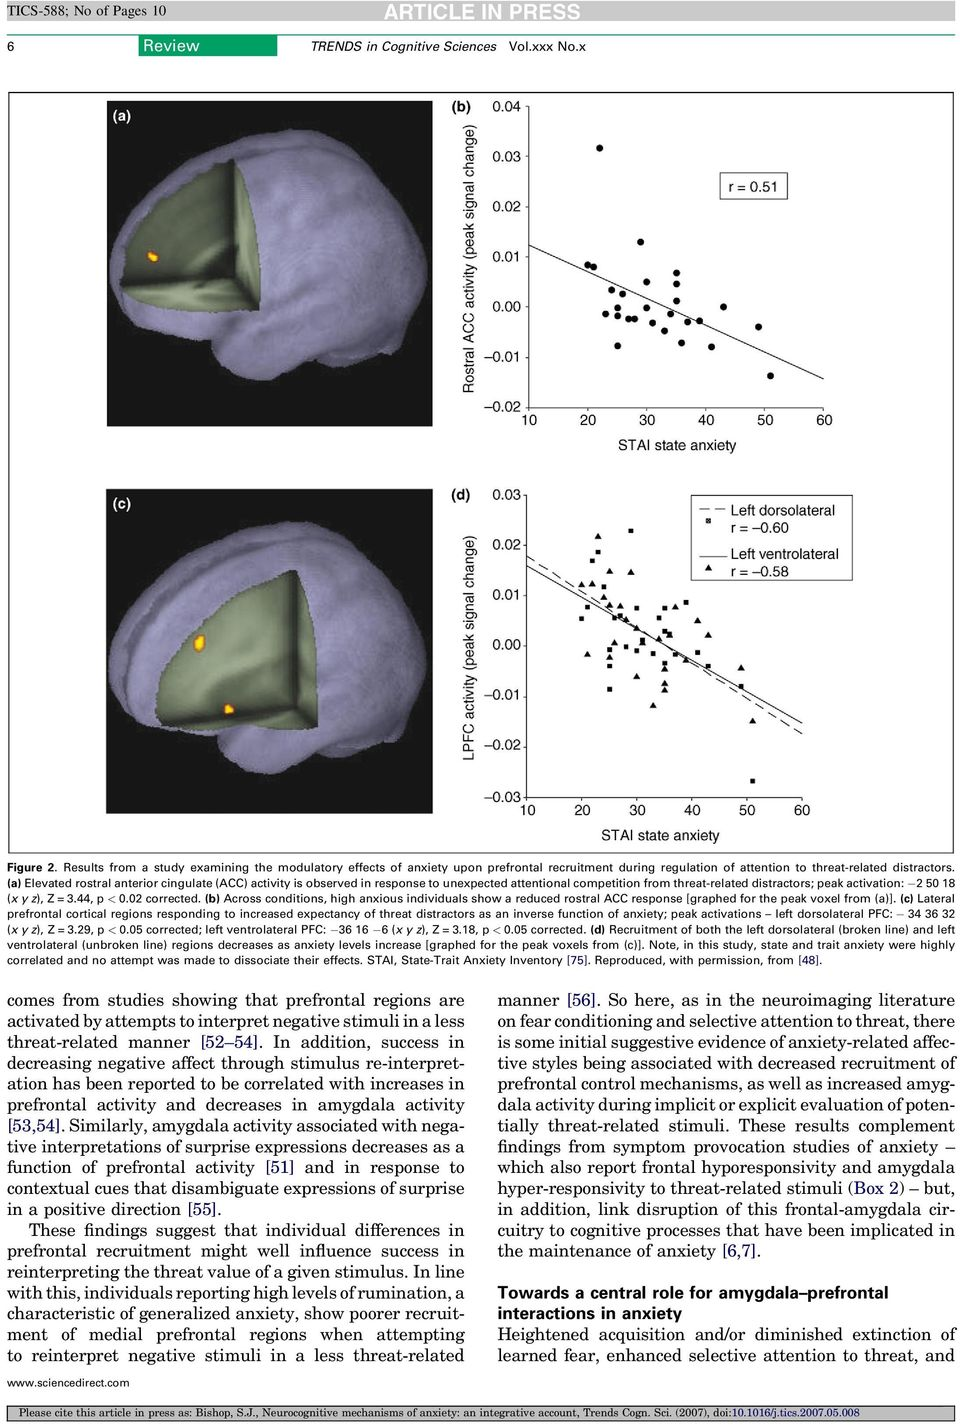 (a) Elevated rostral anterior cingulate (ACC) activity is observed in response to unexpected attentional competition from threat-related distractors; peak activation: 2 5018 (x yz), Z = 3.44, p < 0.